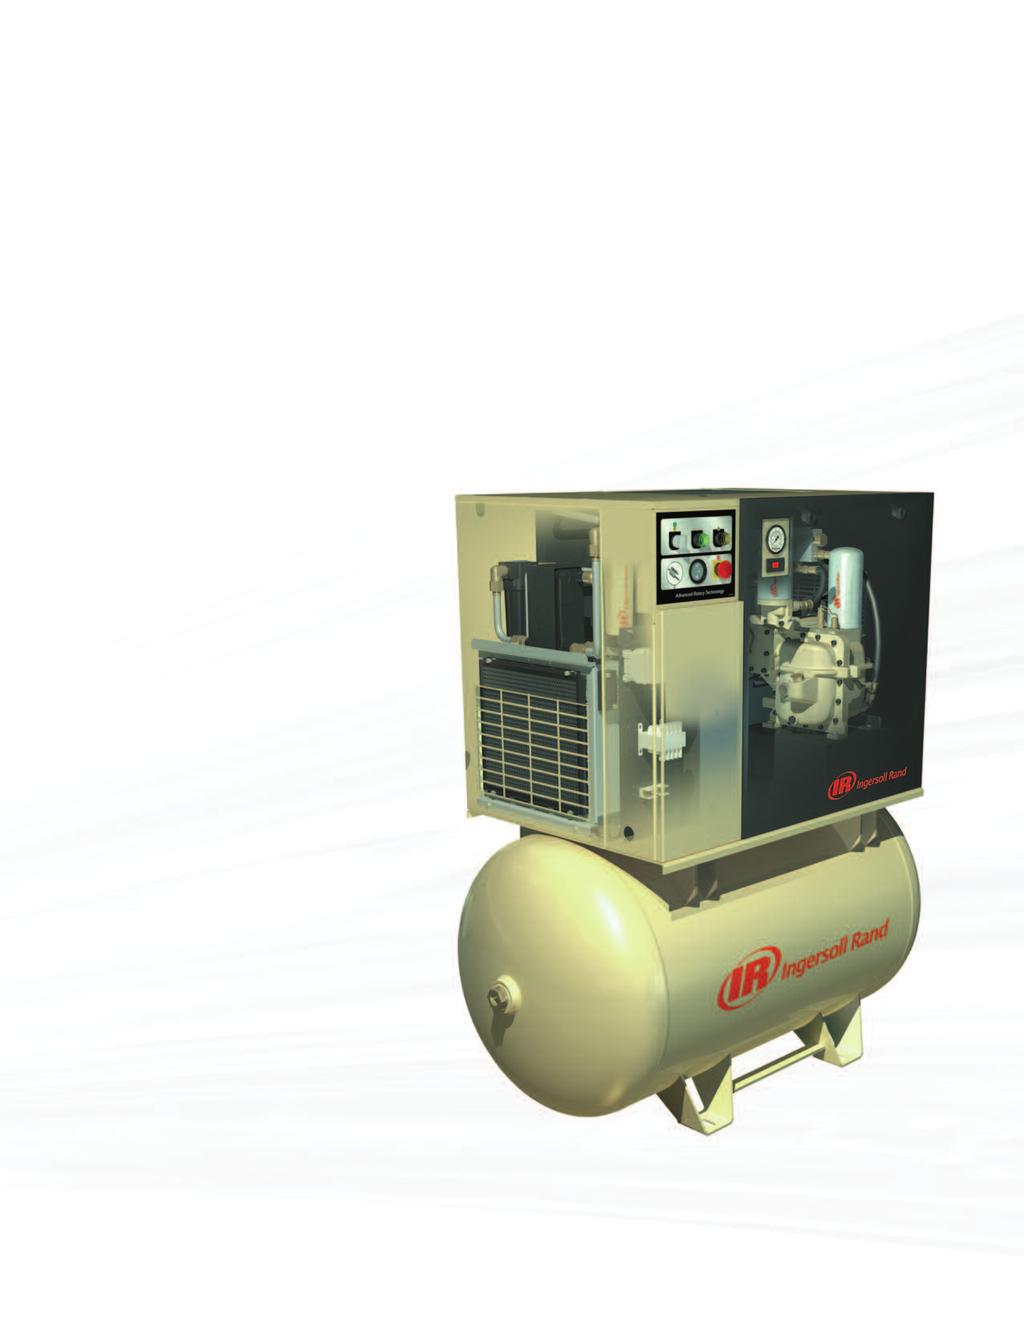 Exceptional Value Ultimate Reliability Maximum Uptime Ingersoll Rand is so confident in the performance of these compressors, that we offer a choice of extended warranty packages designed to provide